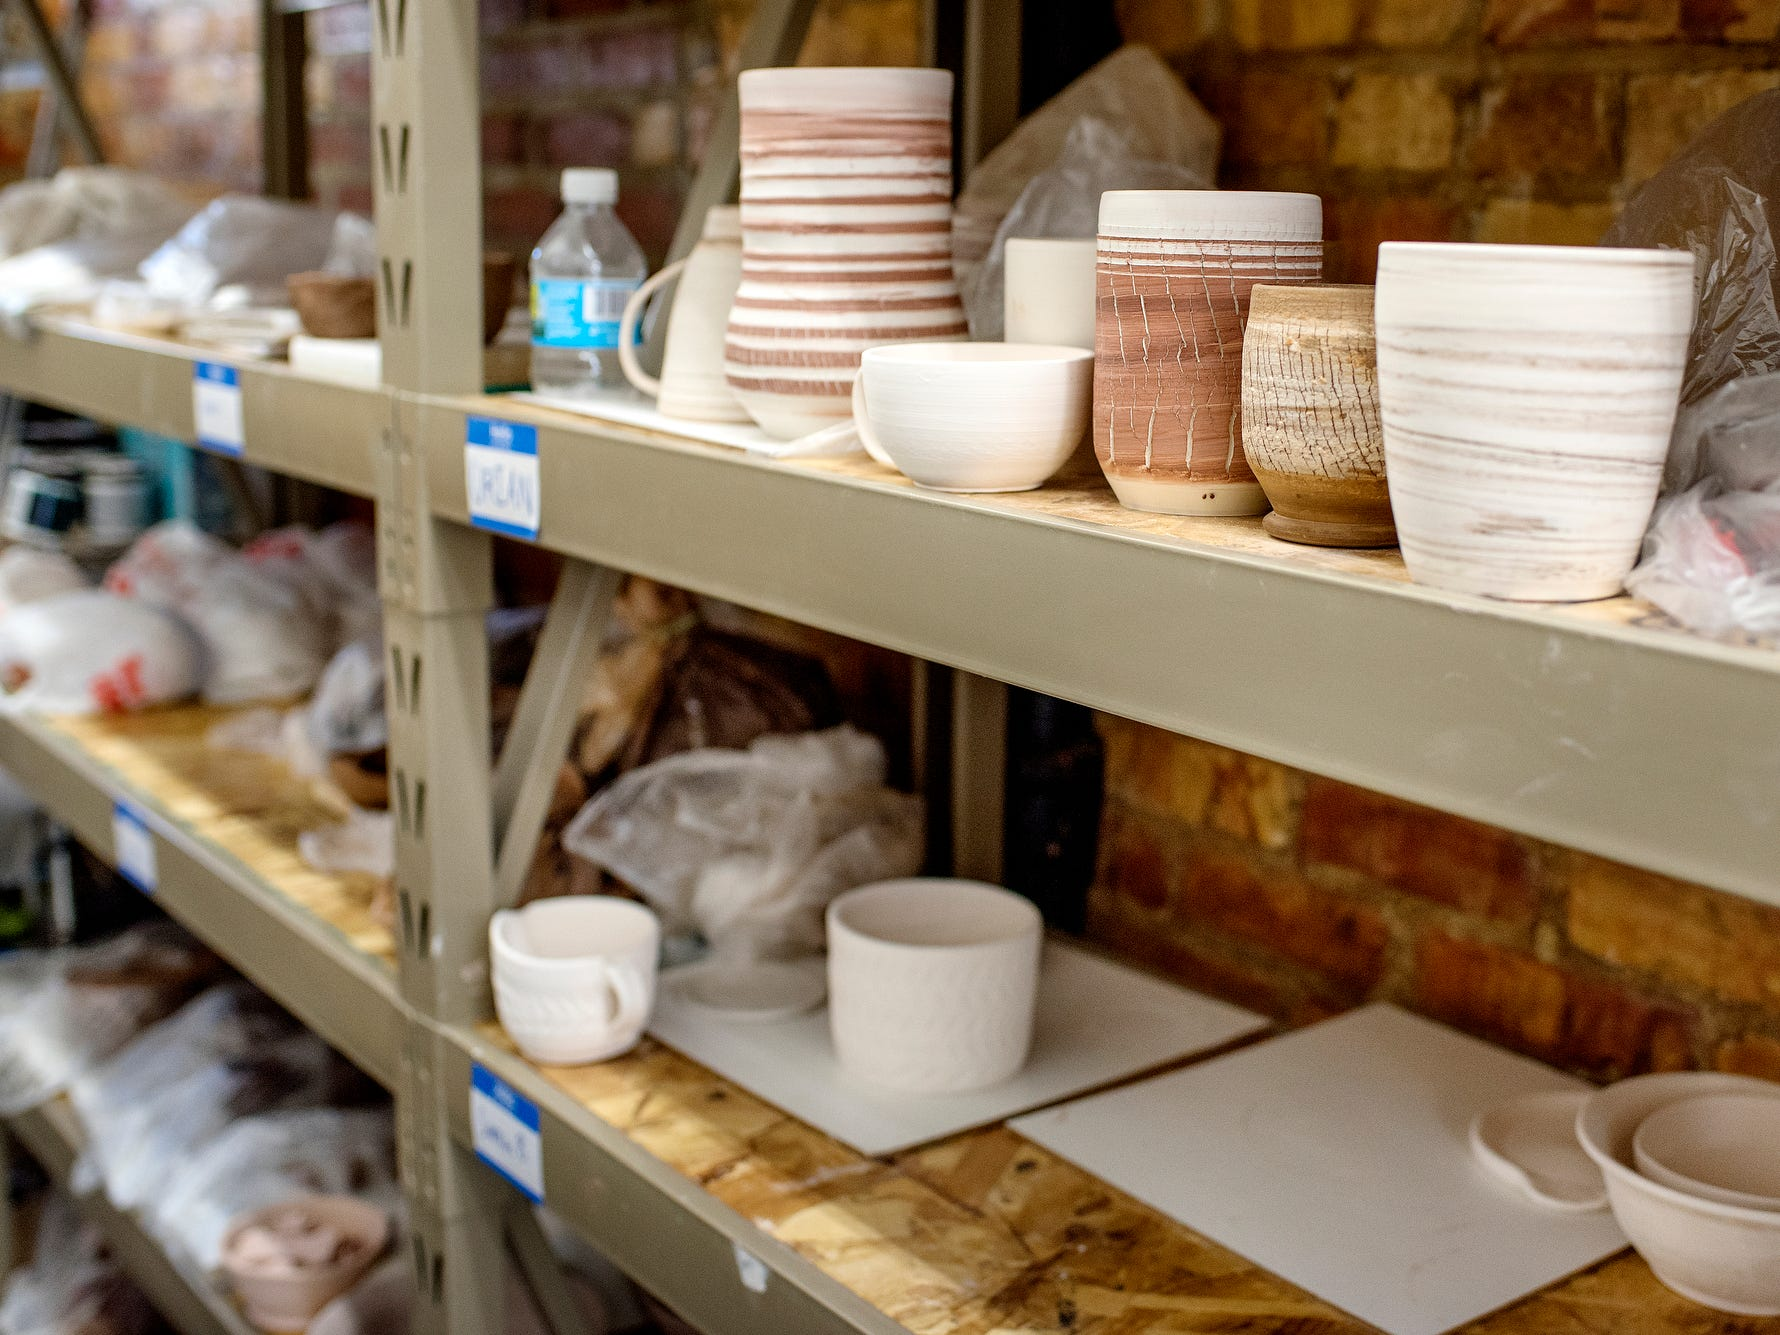 Shelves hold pieces that students are working on at the Wheel House Studio on Wednesday, Nov. 14, 2018, in Lansing.